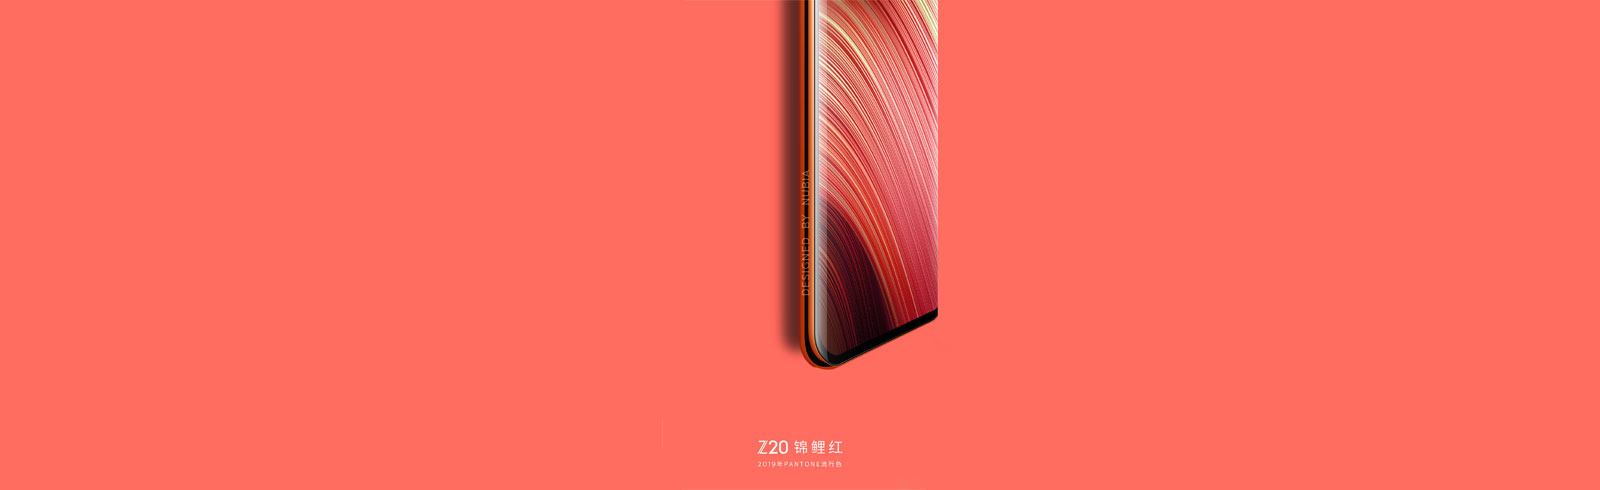 Ni Fei teases the nubia Z20 in Pantone's Colour of the Year 2019 - Living Coral